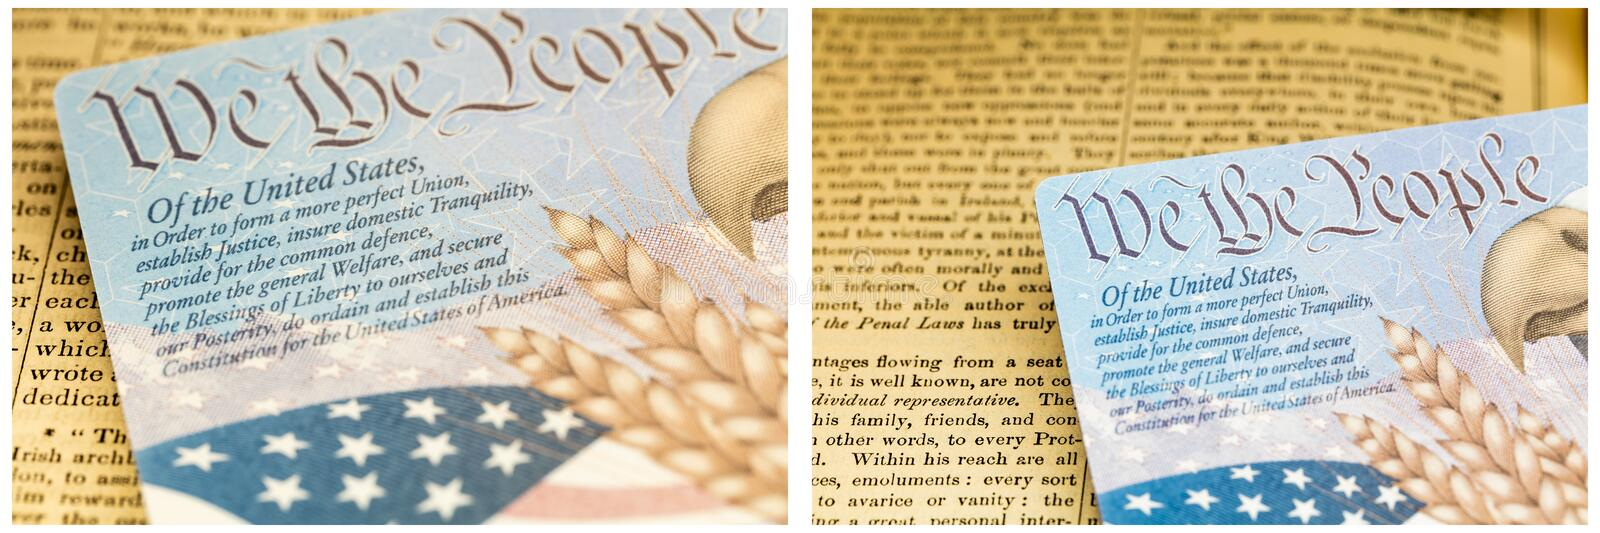 American passport historical document royalty free stock photos